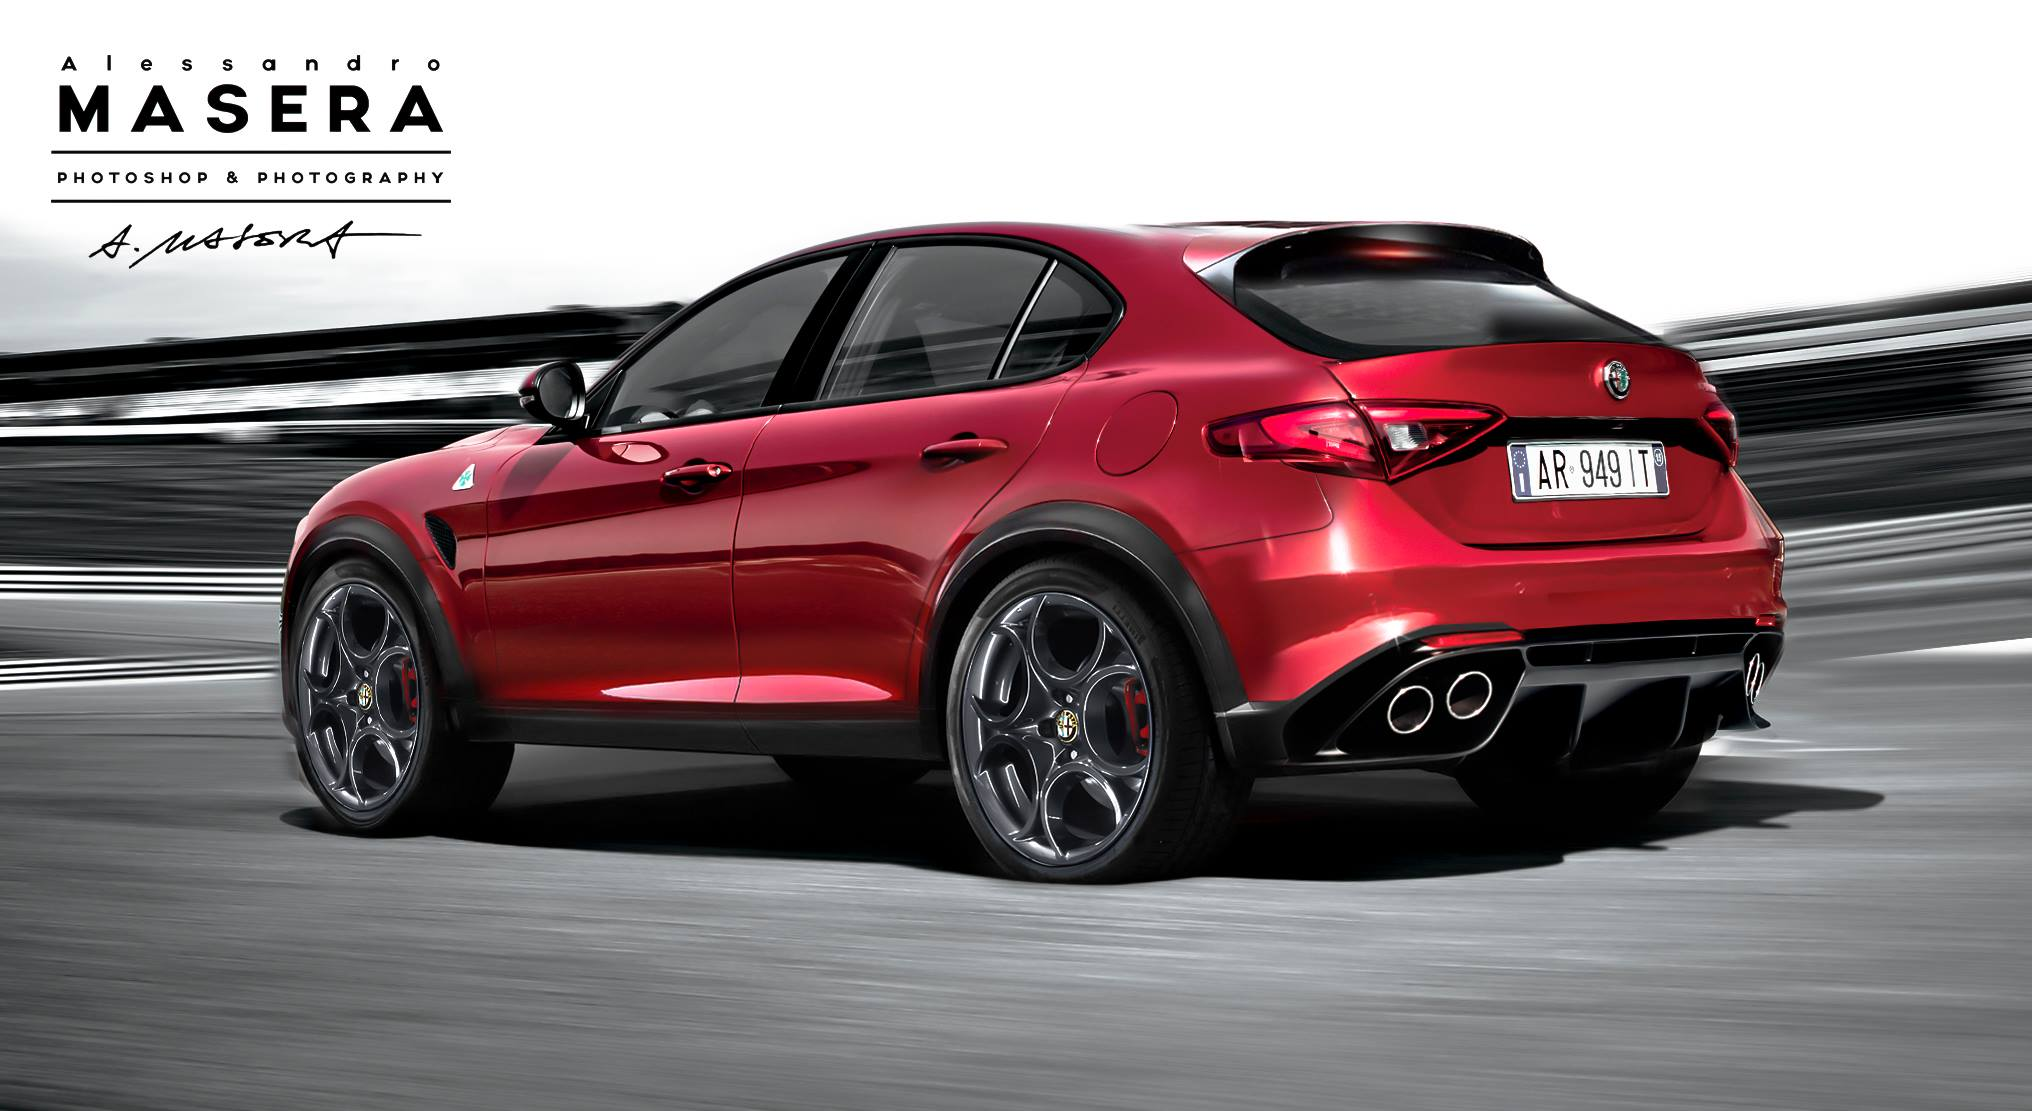 2017 Alfa Romeo Stelvio SUV (Tipo 949) Debut Set for 2016 ...